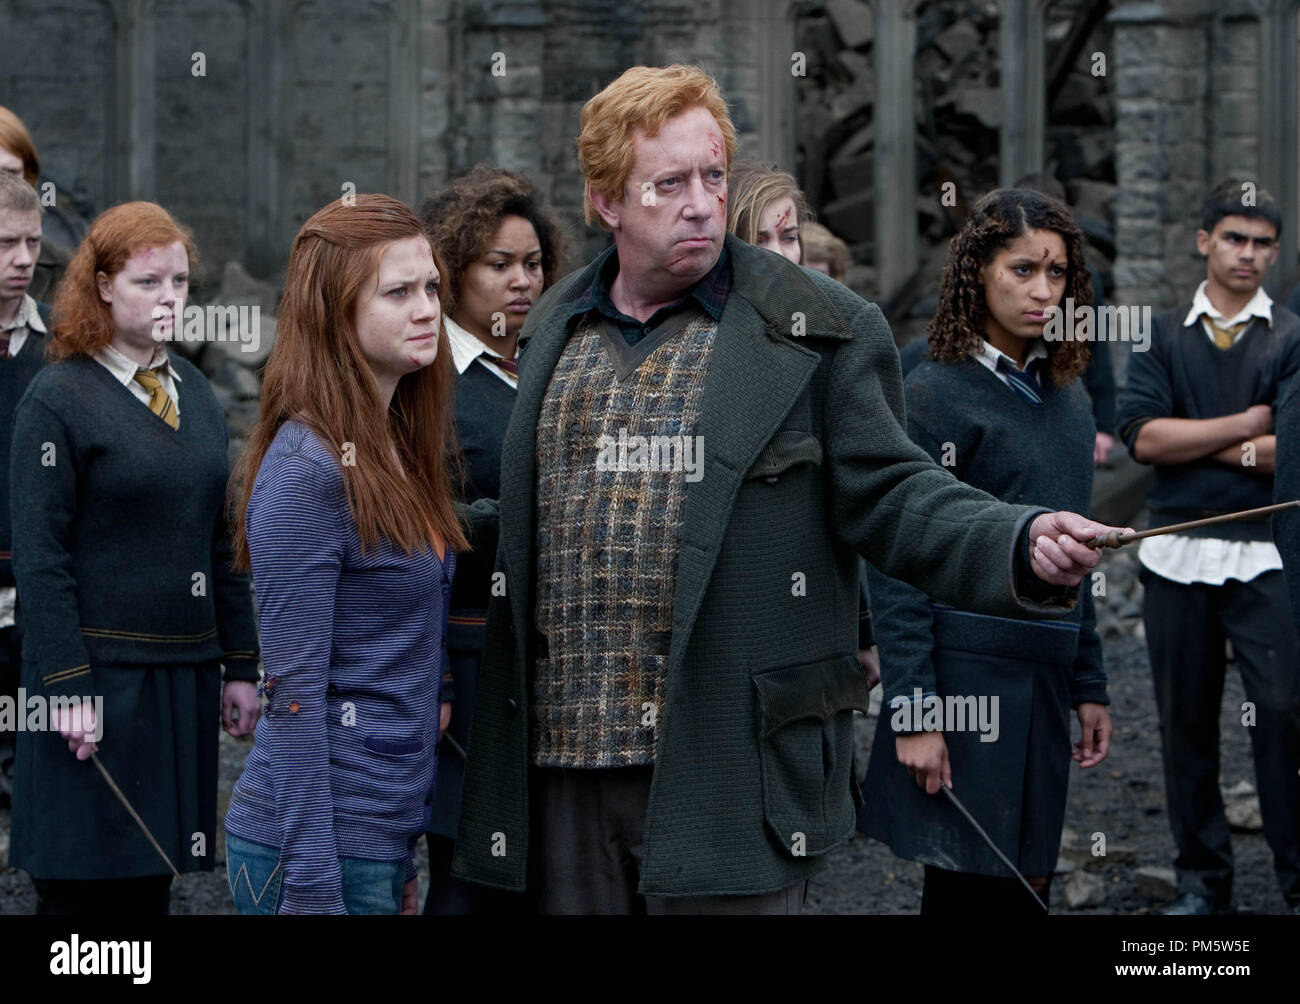 """(L-r) BONNIE WRIGHT AS Ginny Weasley and MARK WILLIAMS as Arthur Weasley in Warner Bros. Pictures' fantasy adventure """"HARRY POTTER AND THE DEATHLY HALLOWS – PART 2,"""" a Warner Bros. Pictures release. - Stock Image"""